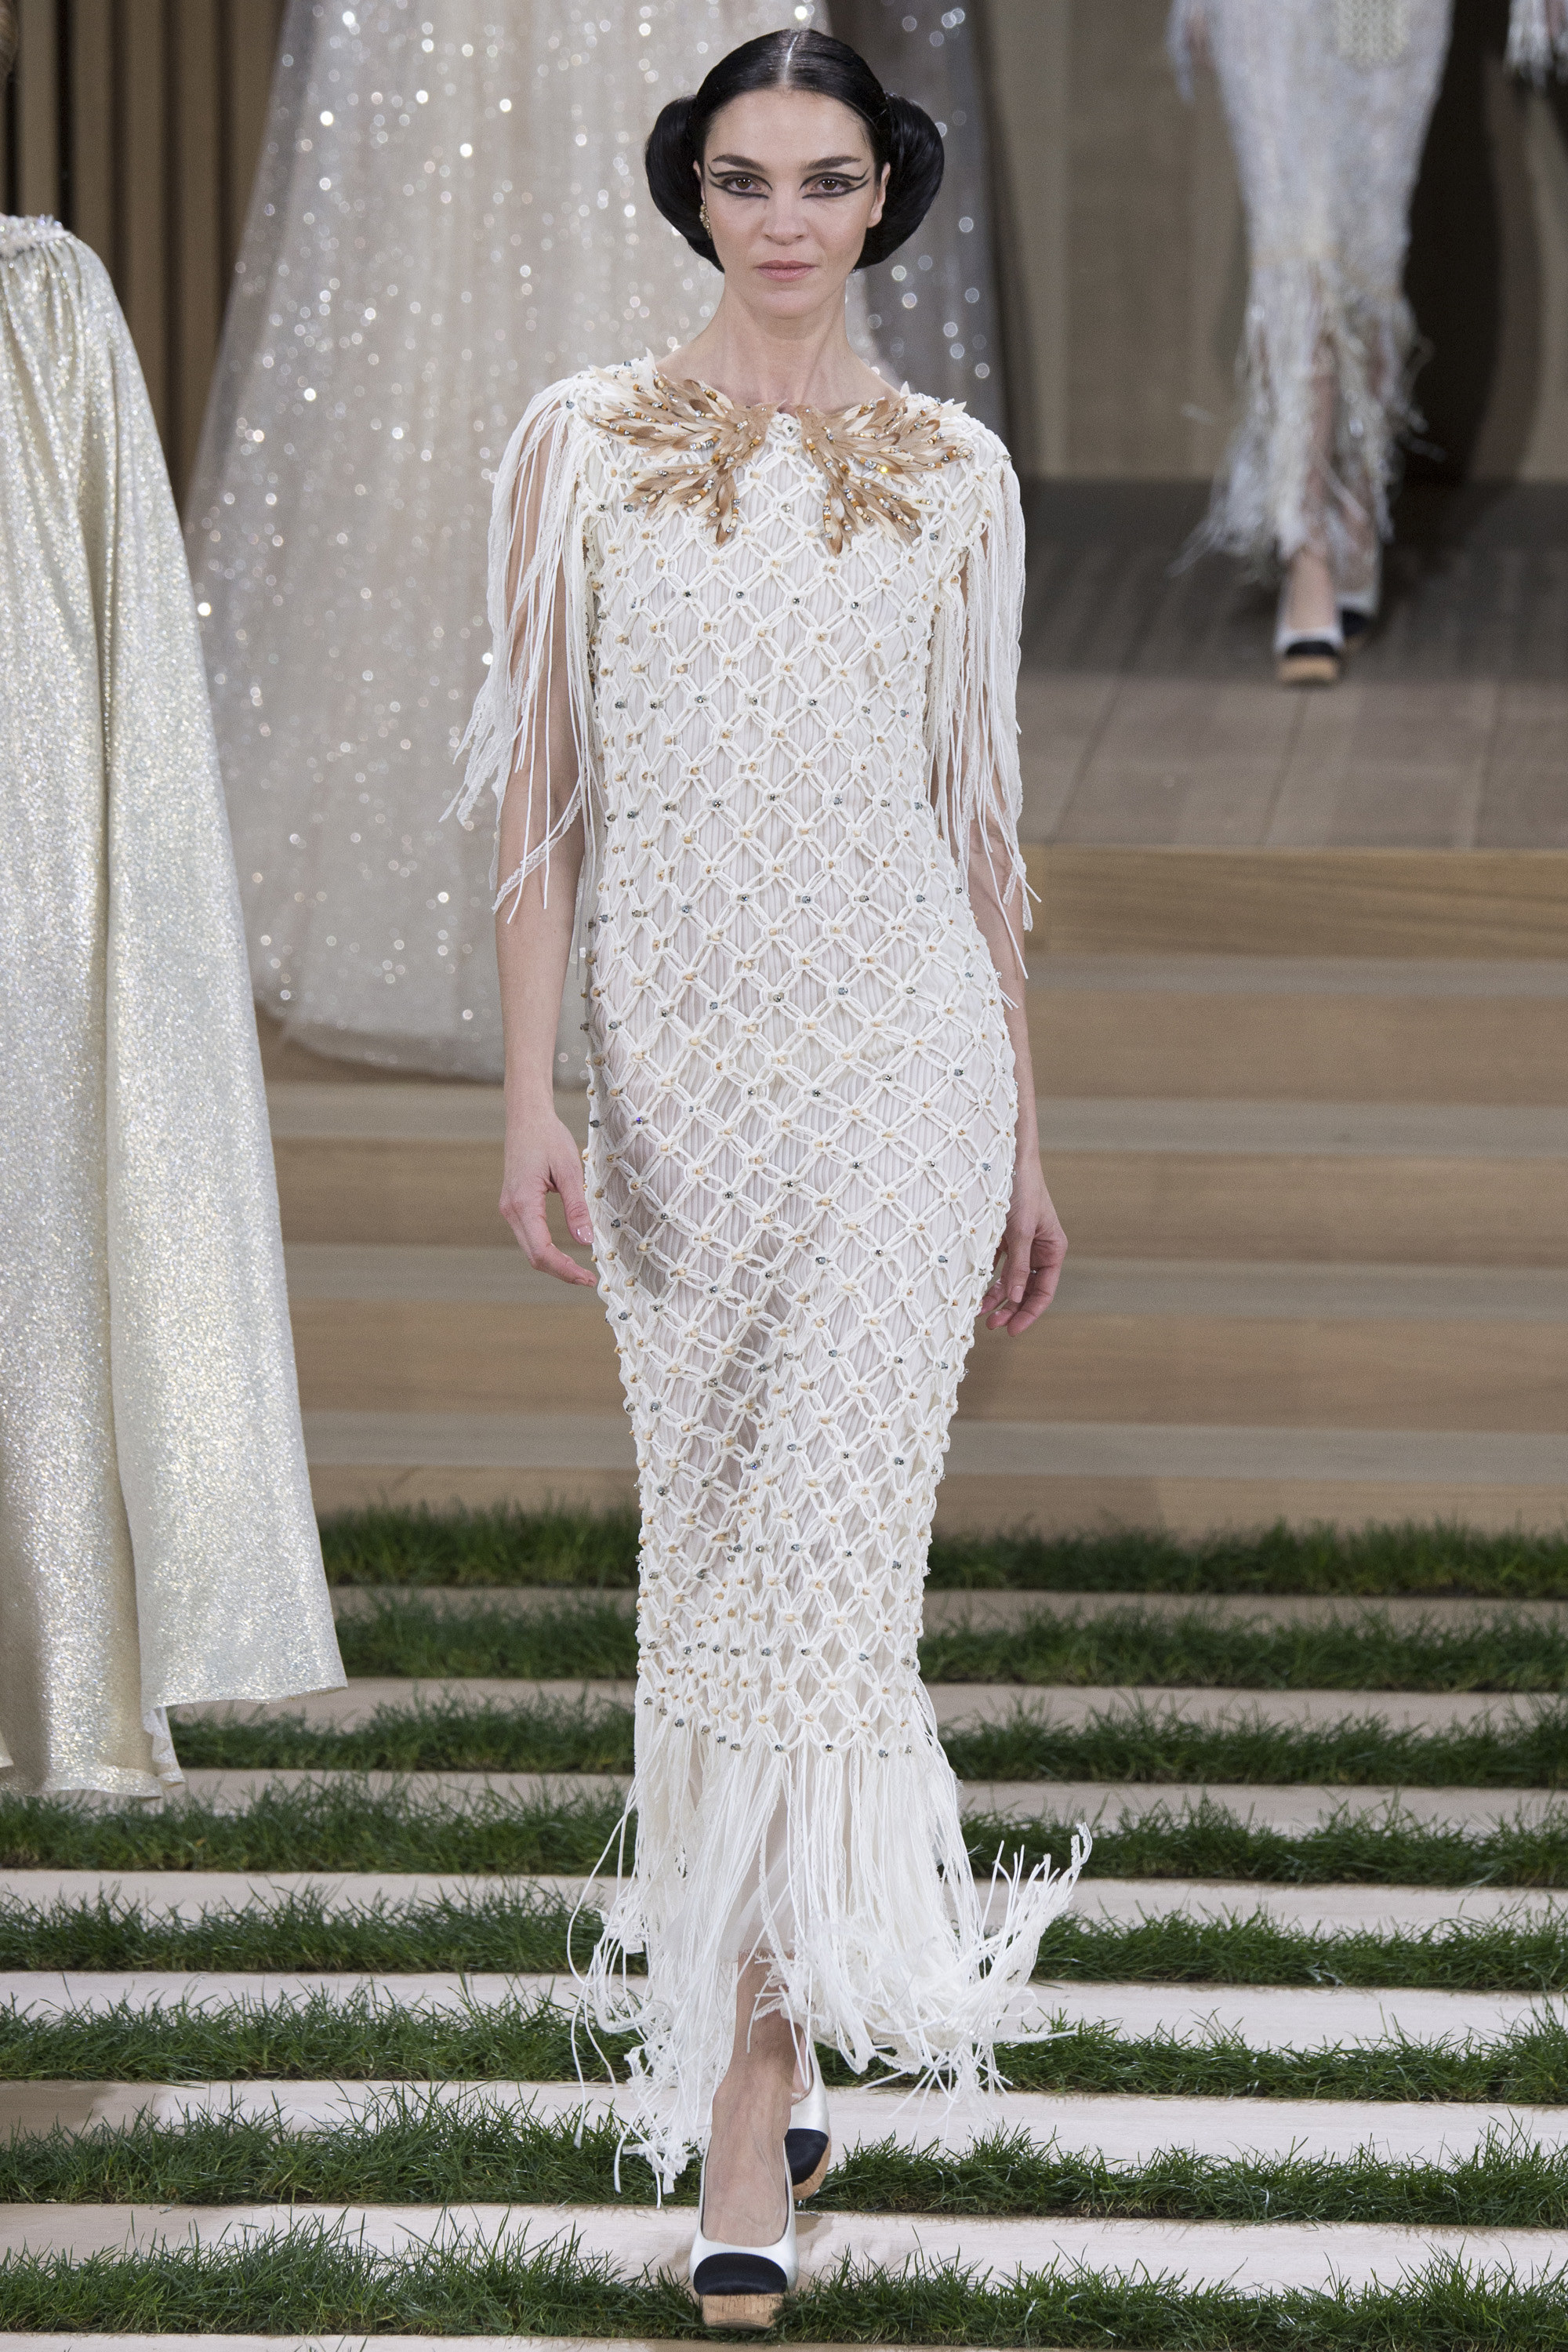 Chanel-Couture-Spring-2016-Paris-Fashion-Week-26.jpg